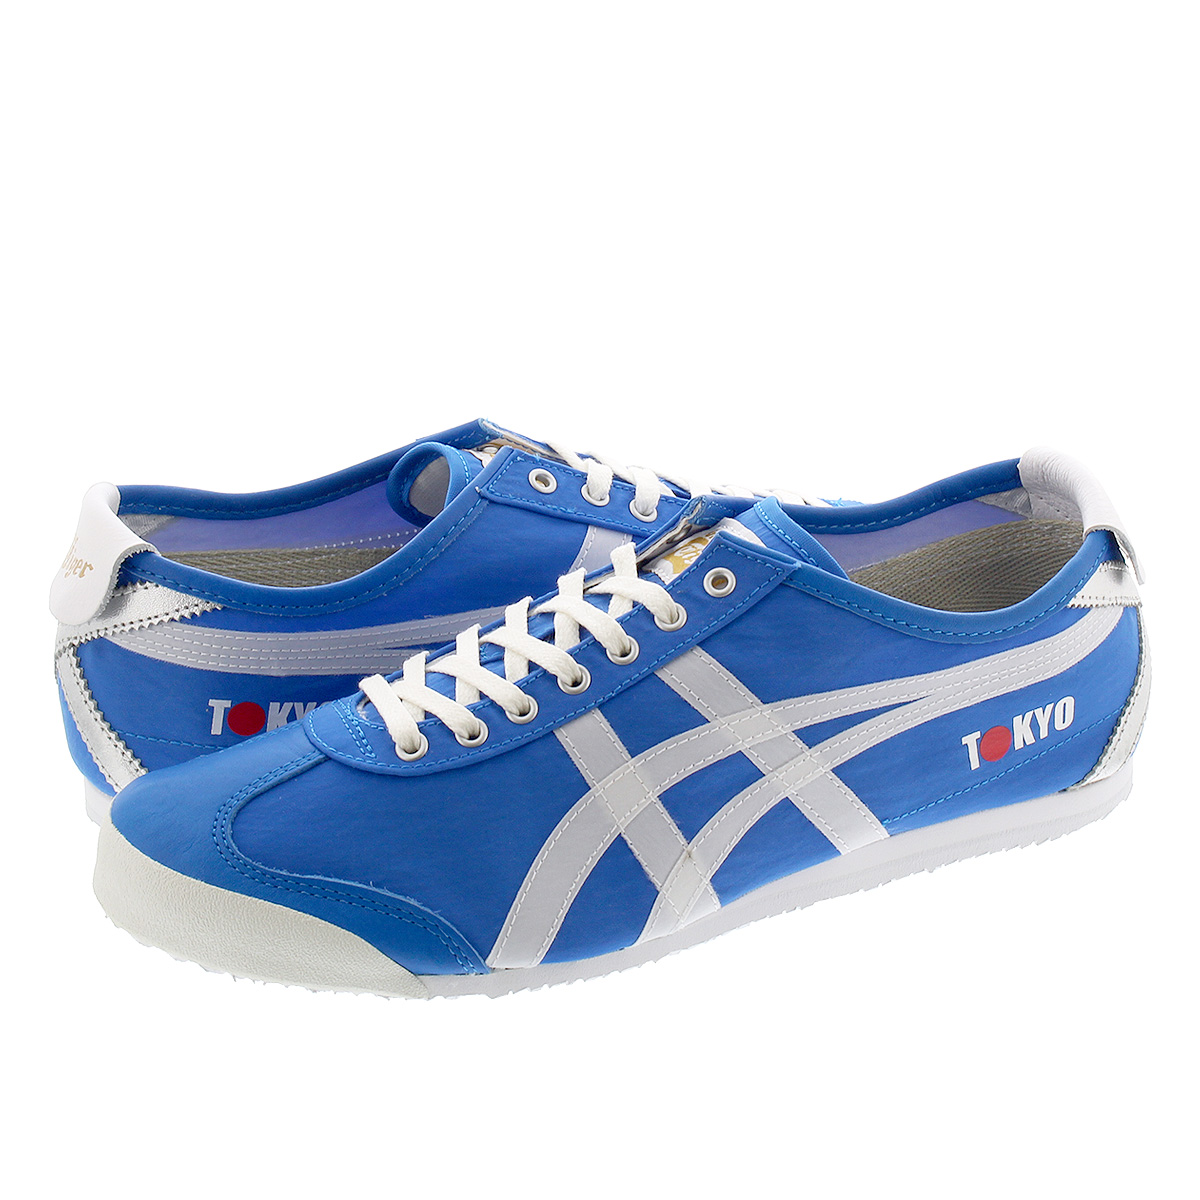 Onitsuka Tiger MEXICO 66 オニツカタイガー メキシコ 66 DIRECTOIRE BLUE/WHITE 1183a730-401